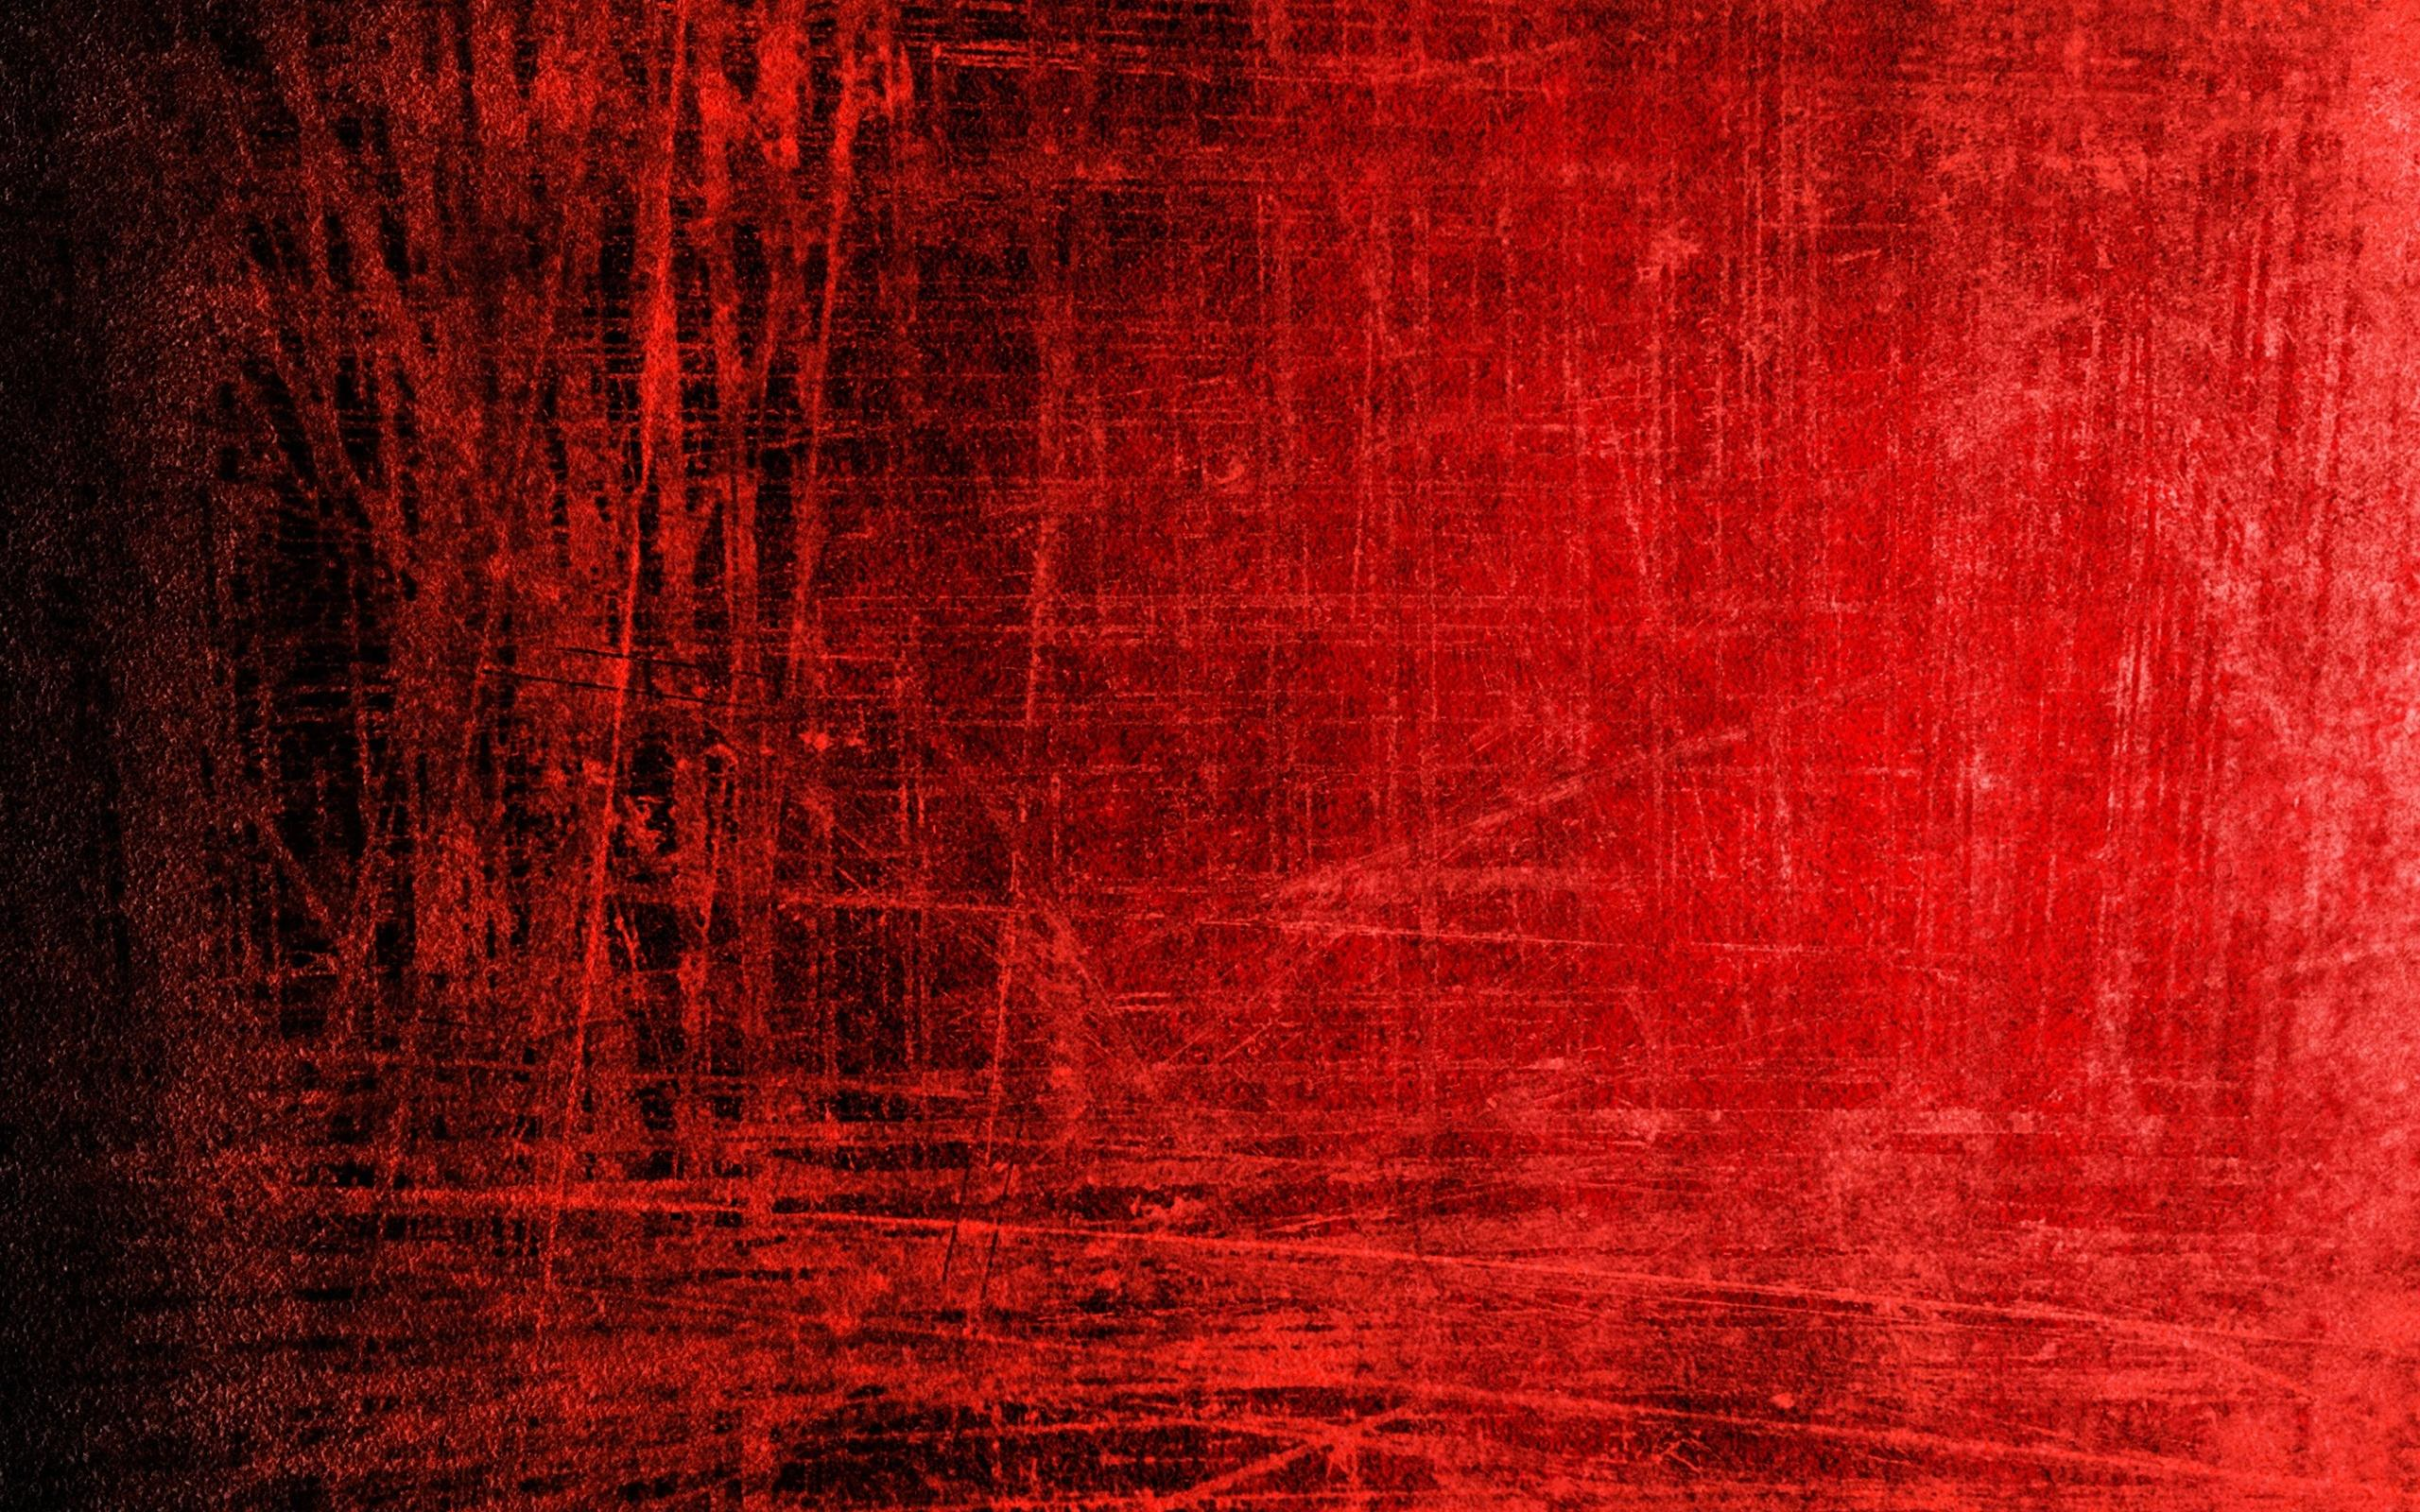 Red Background Fullscreen HD #6417 Wallpaper